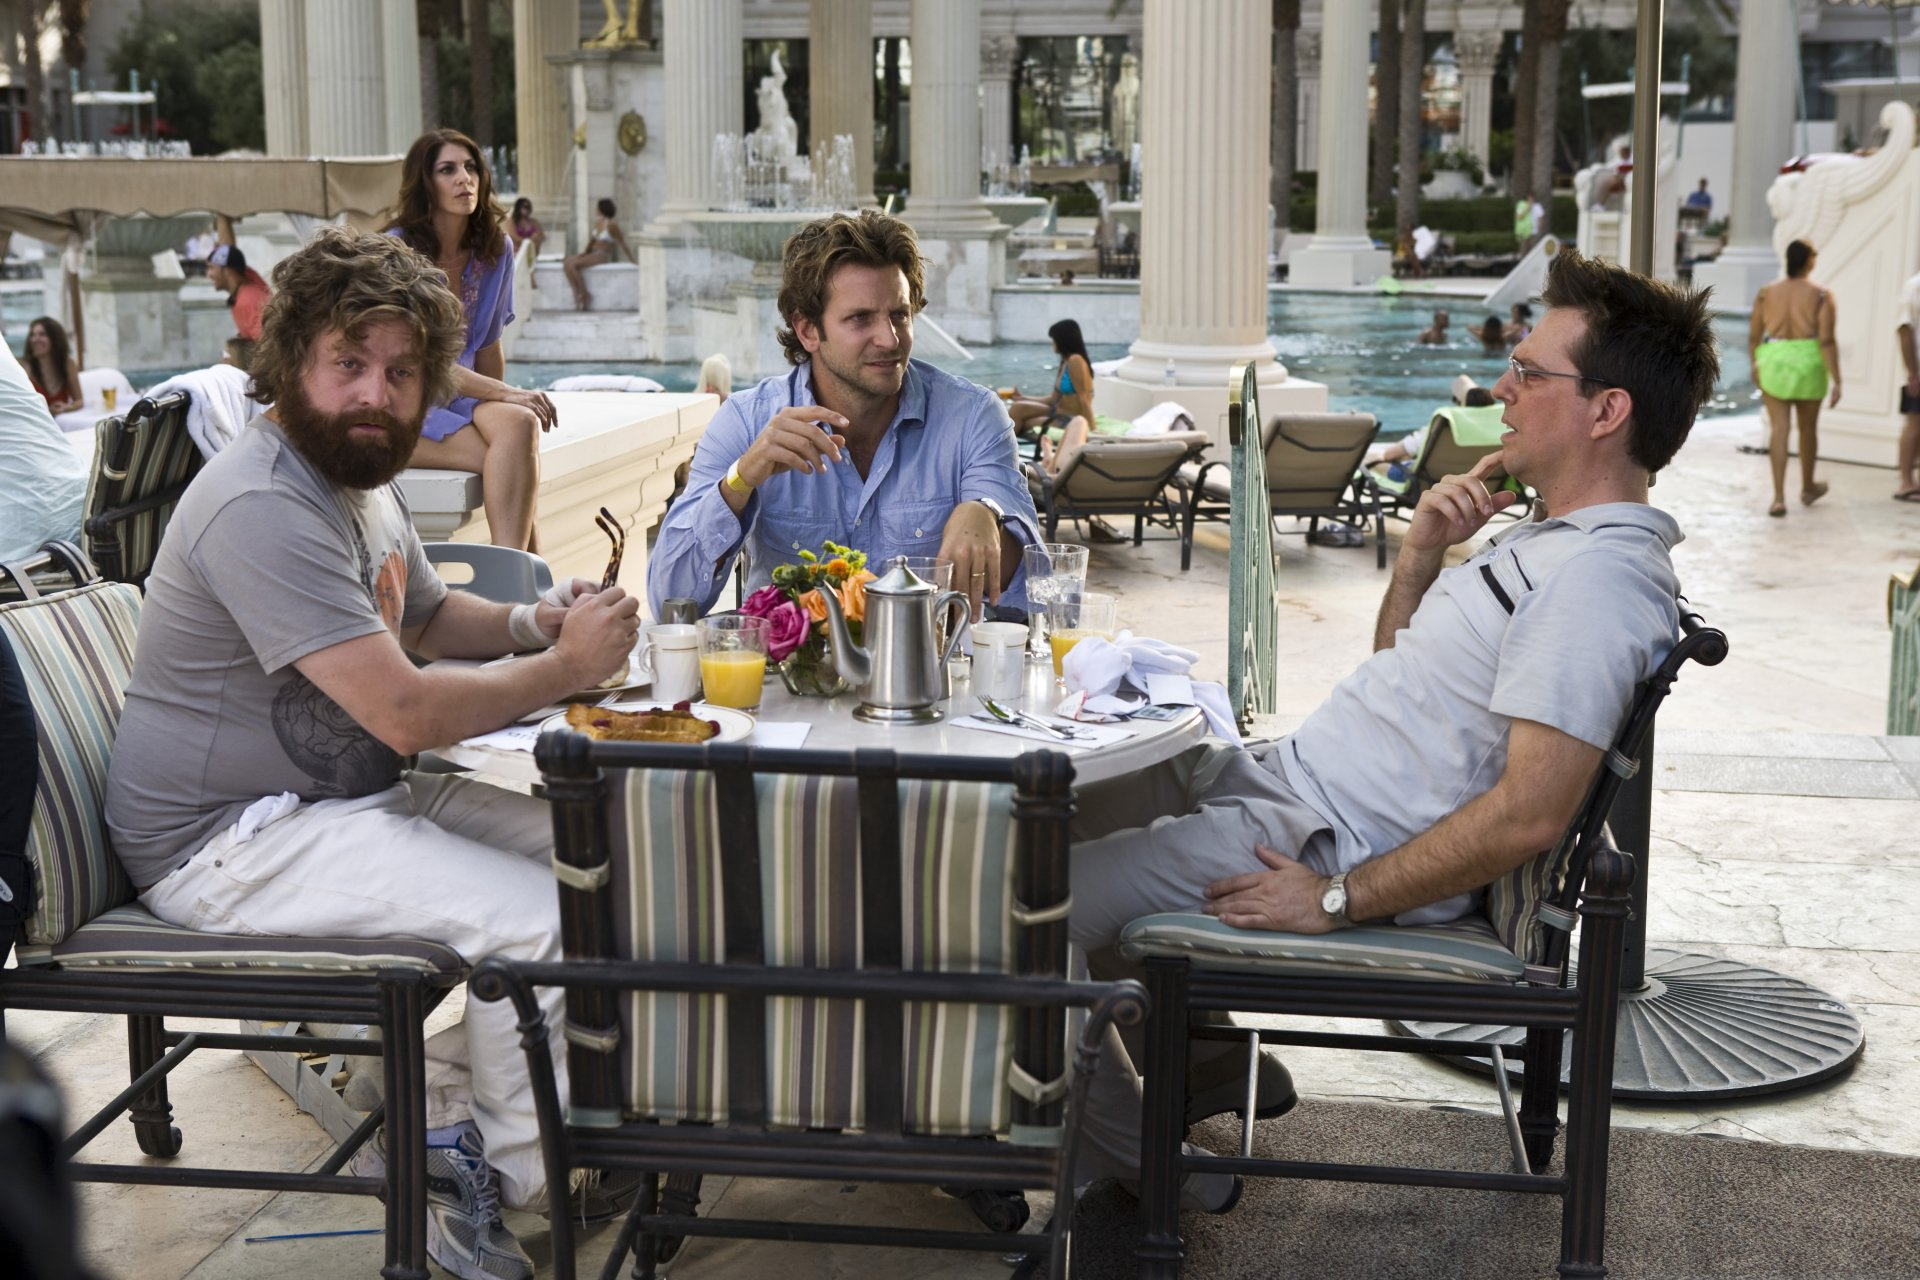 Movie - The Hangover  Ed Helms Zach Galifianakis Bradley Cooper Wallpaper